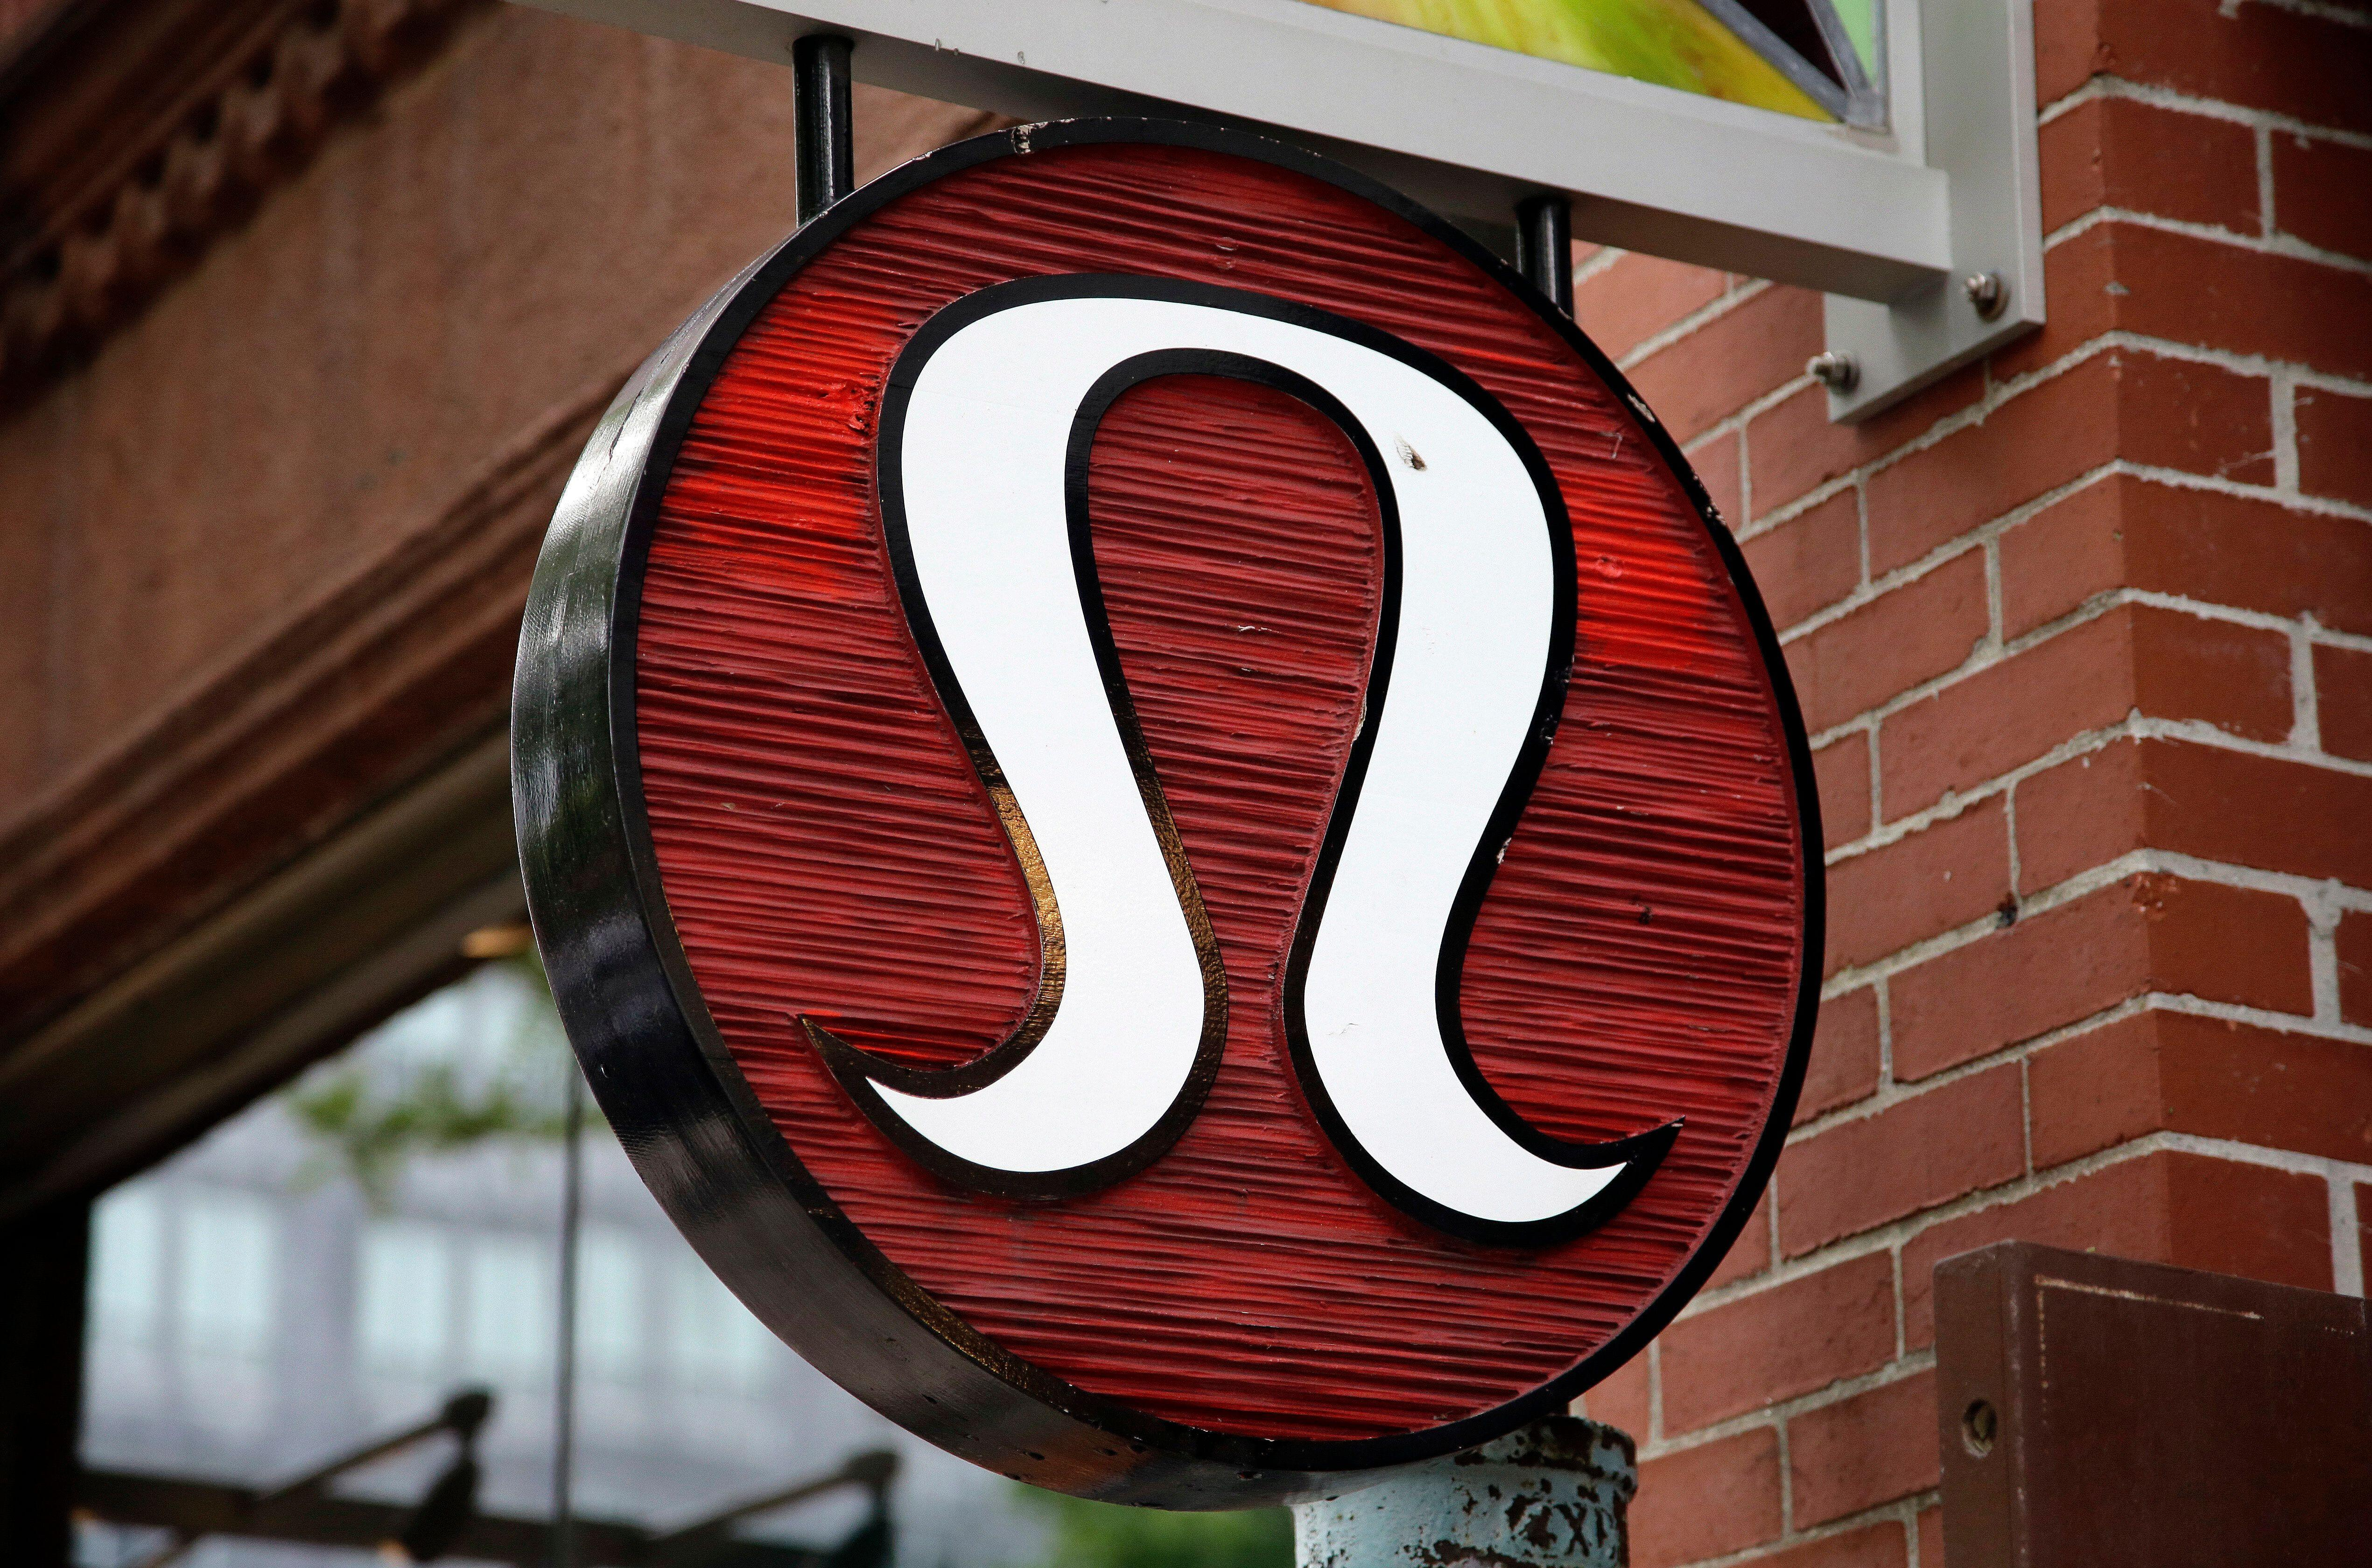 Menswear, shoes and self-care: How Lululemon is chasing revenue growth